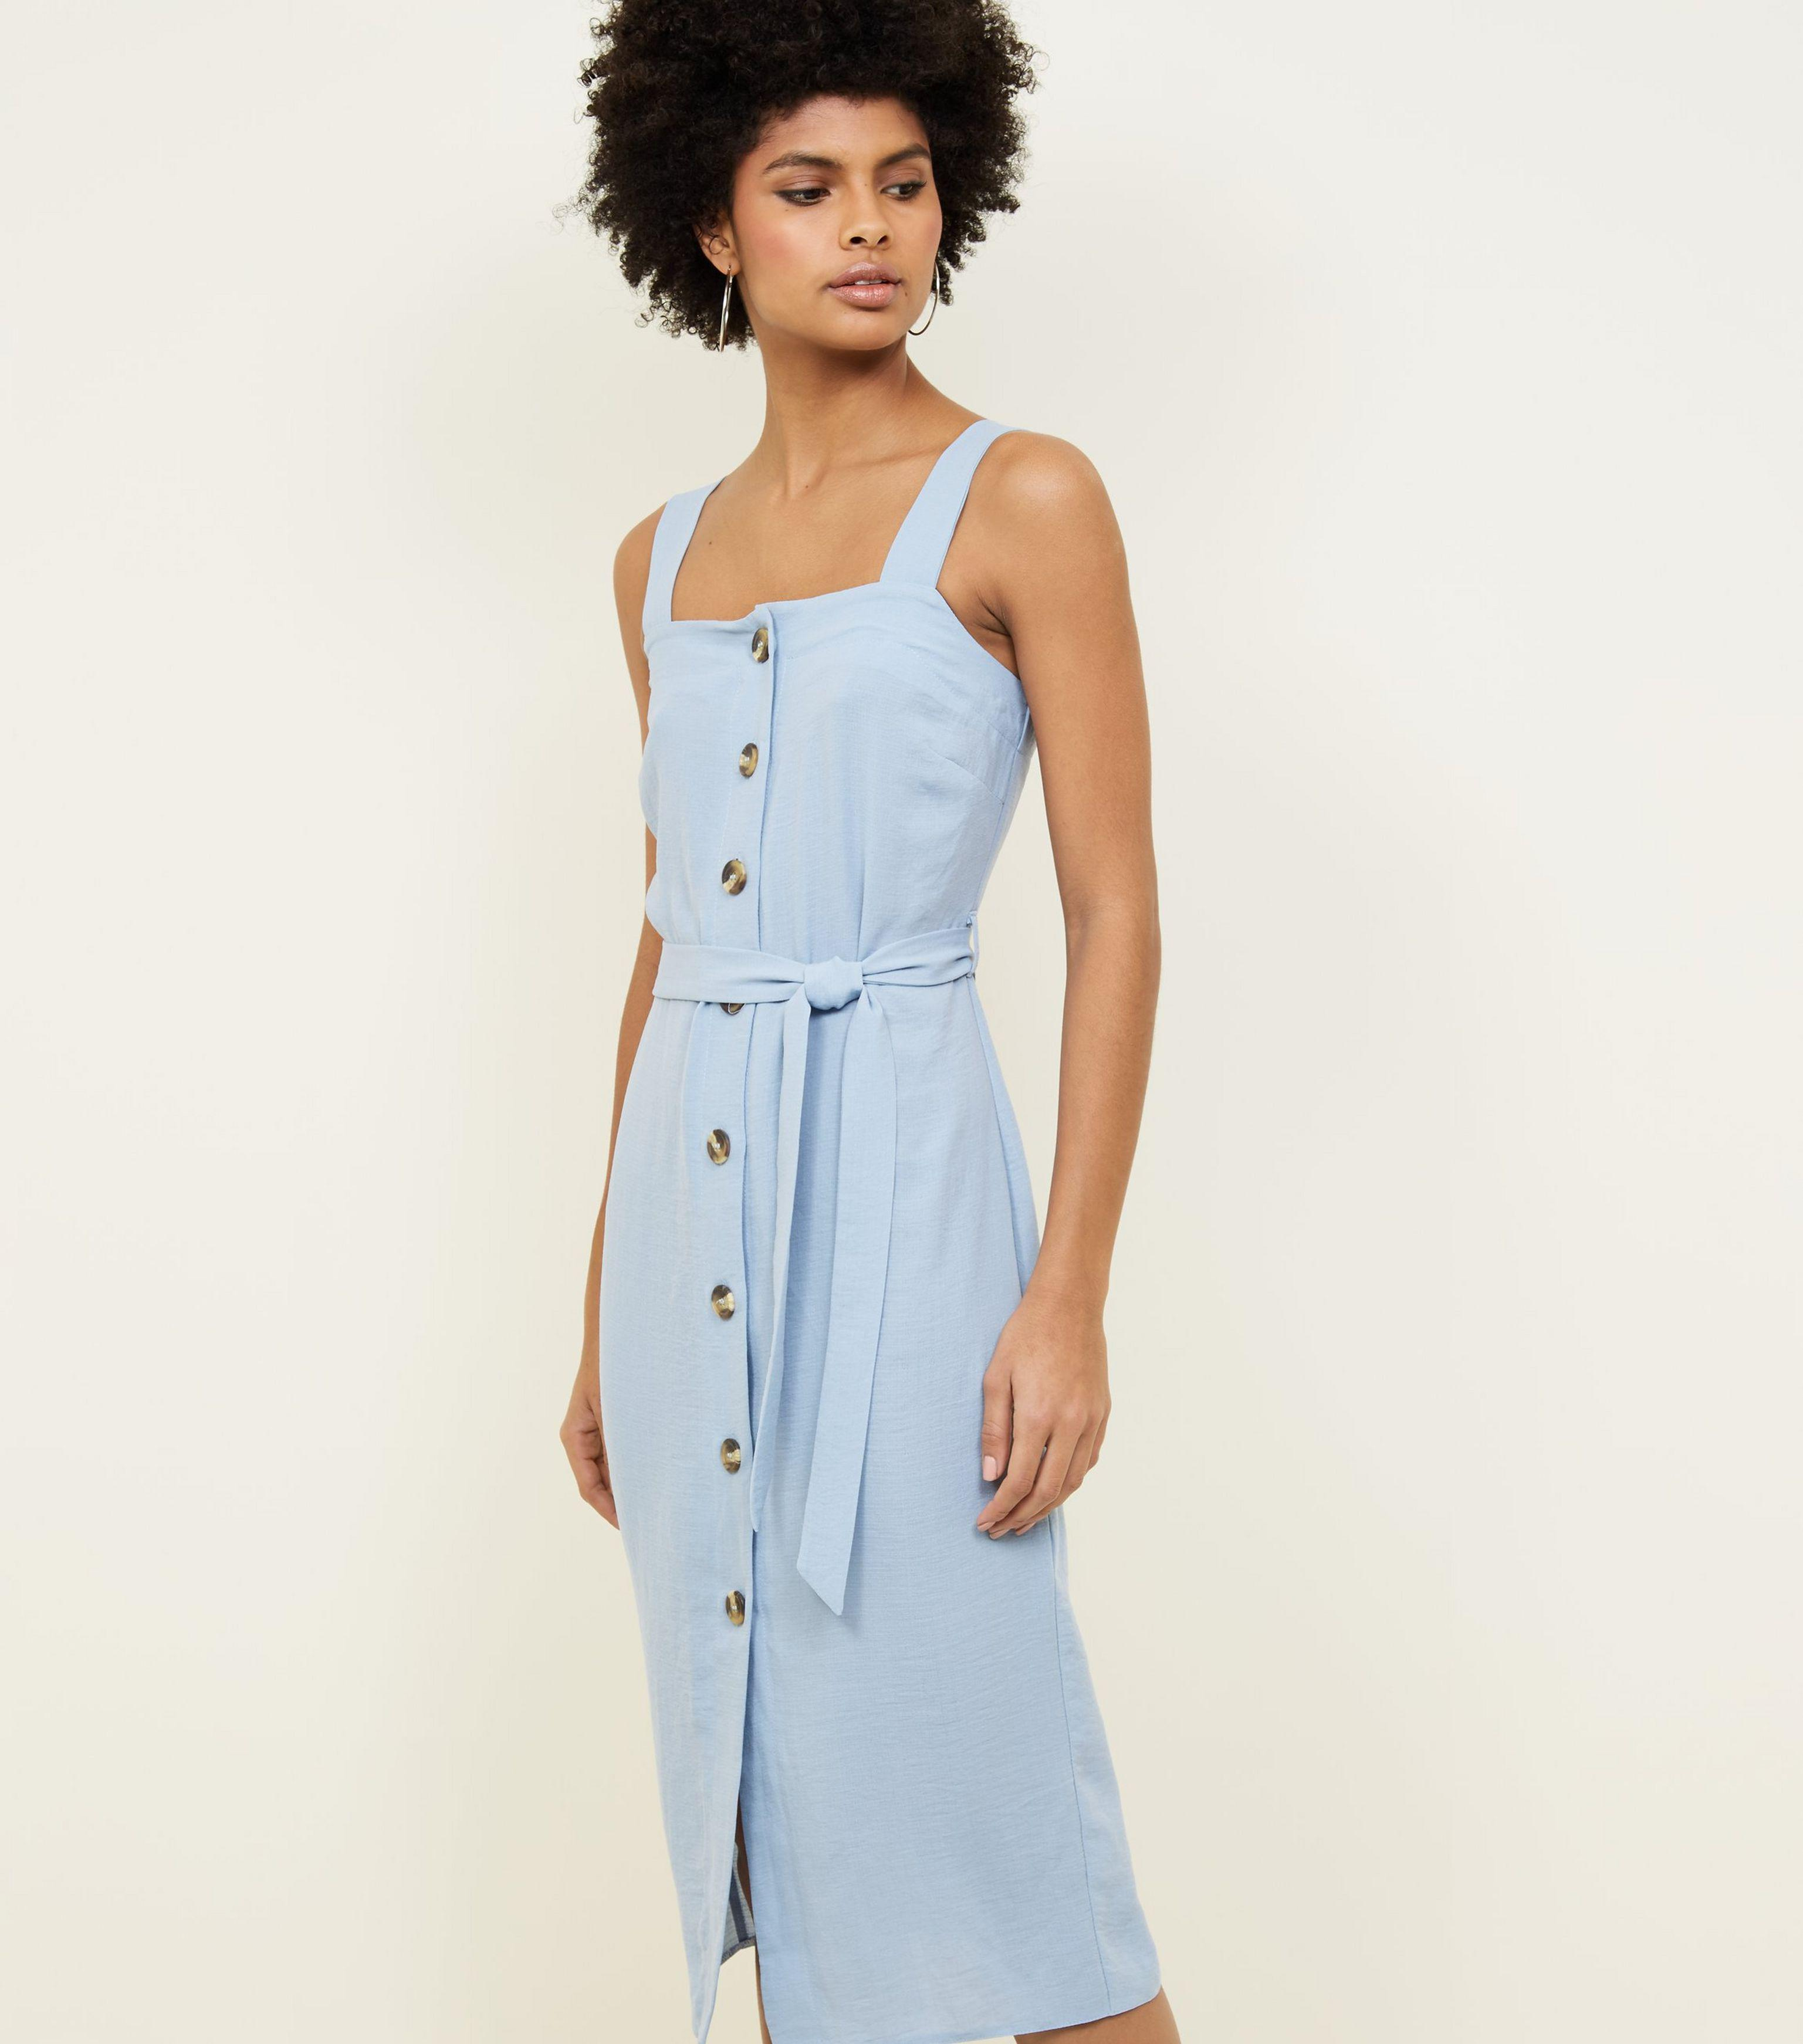 771db69e3ae New Look Pale Blue Button Up Belted Linen-look Midi Dress in Blue - Lyst